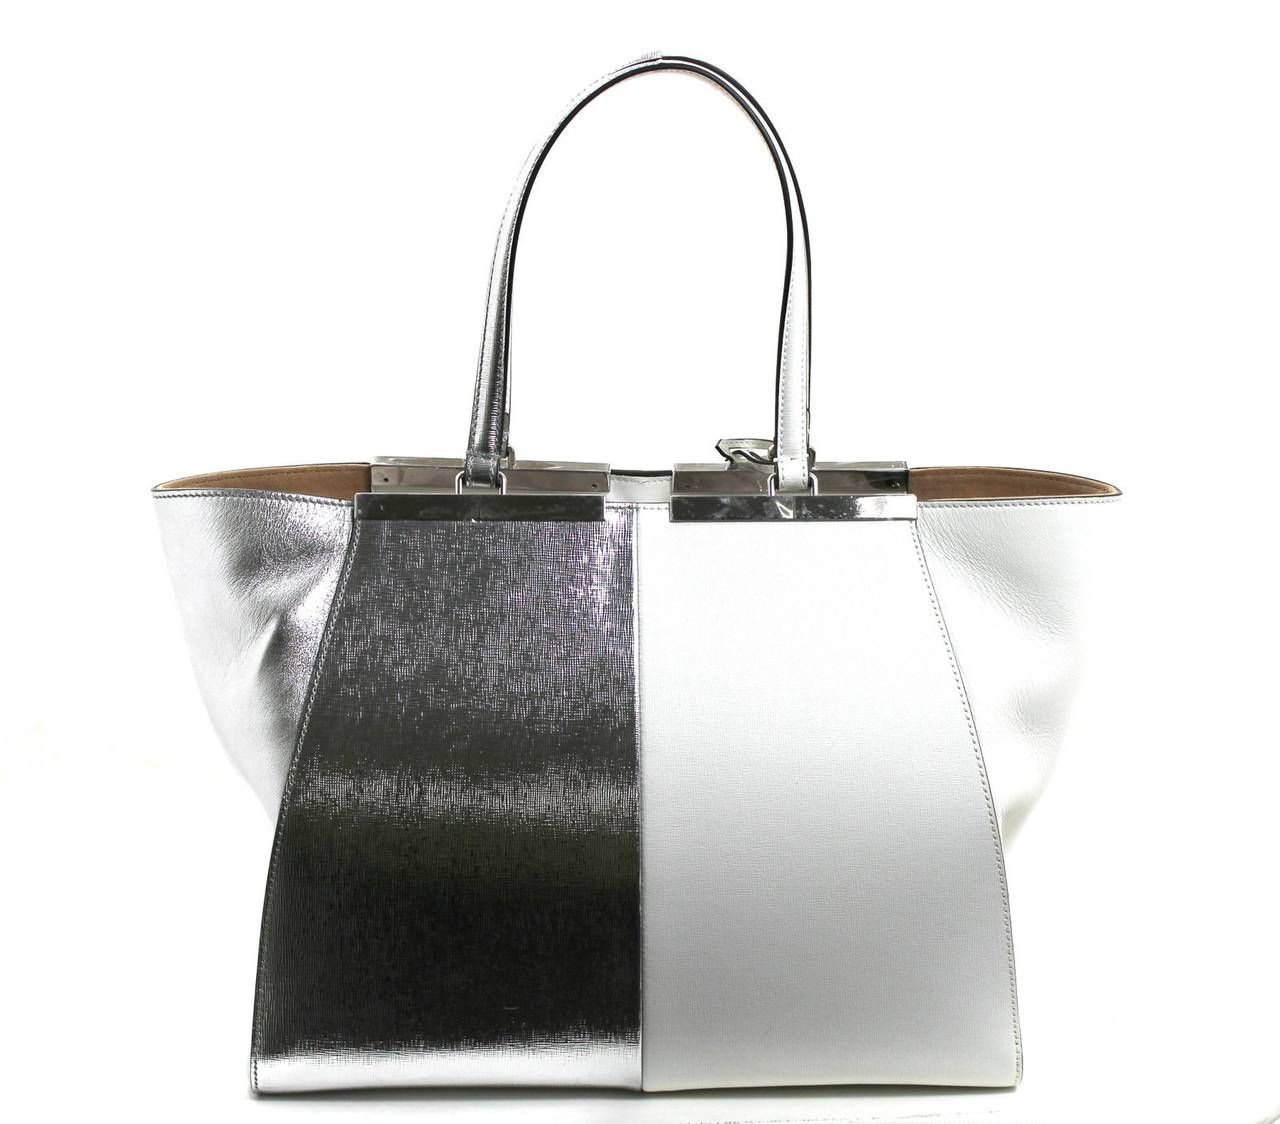 Fendi White and Silver Leather BiColor Trois Jours Tote Bag 2